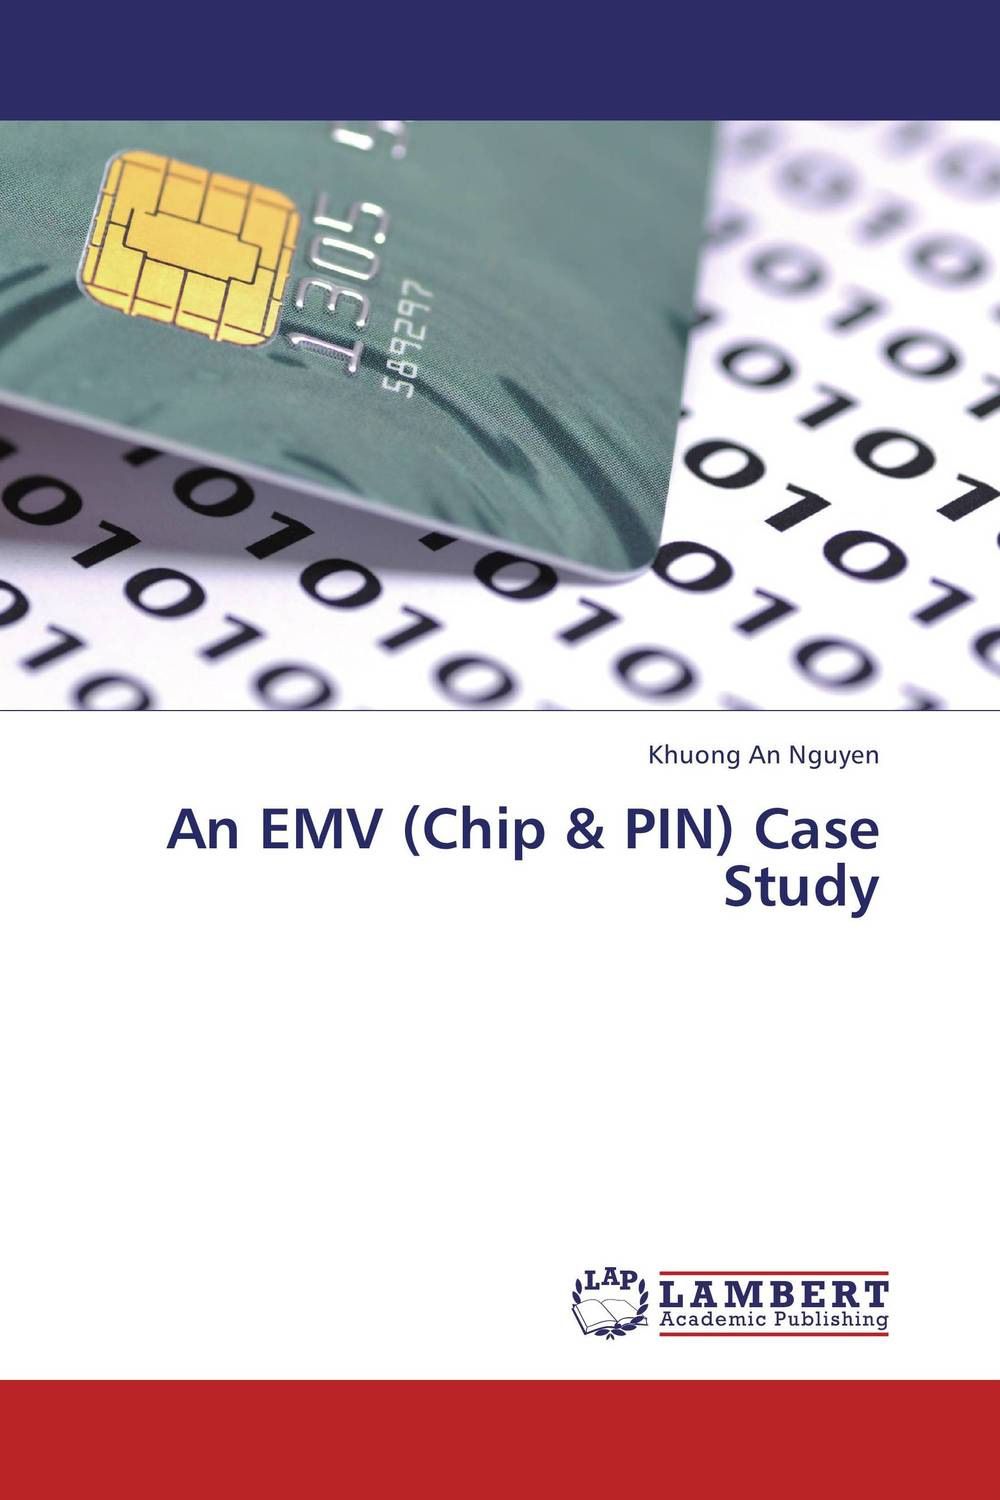 An EMV (Chip & PIN) Case Study belousov a security features of banknotes and other documents methods of authentication manual денежные билеты бланки ценных бумаг и документов